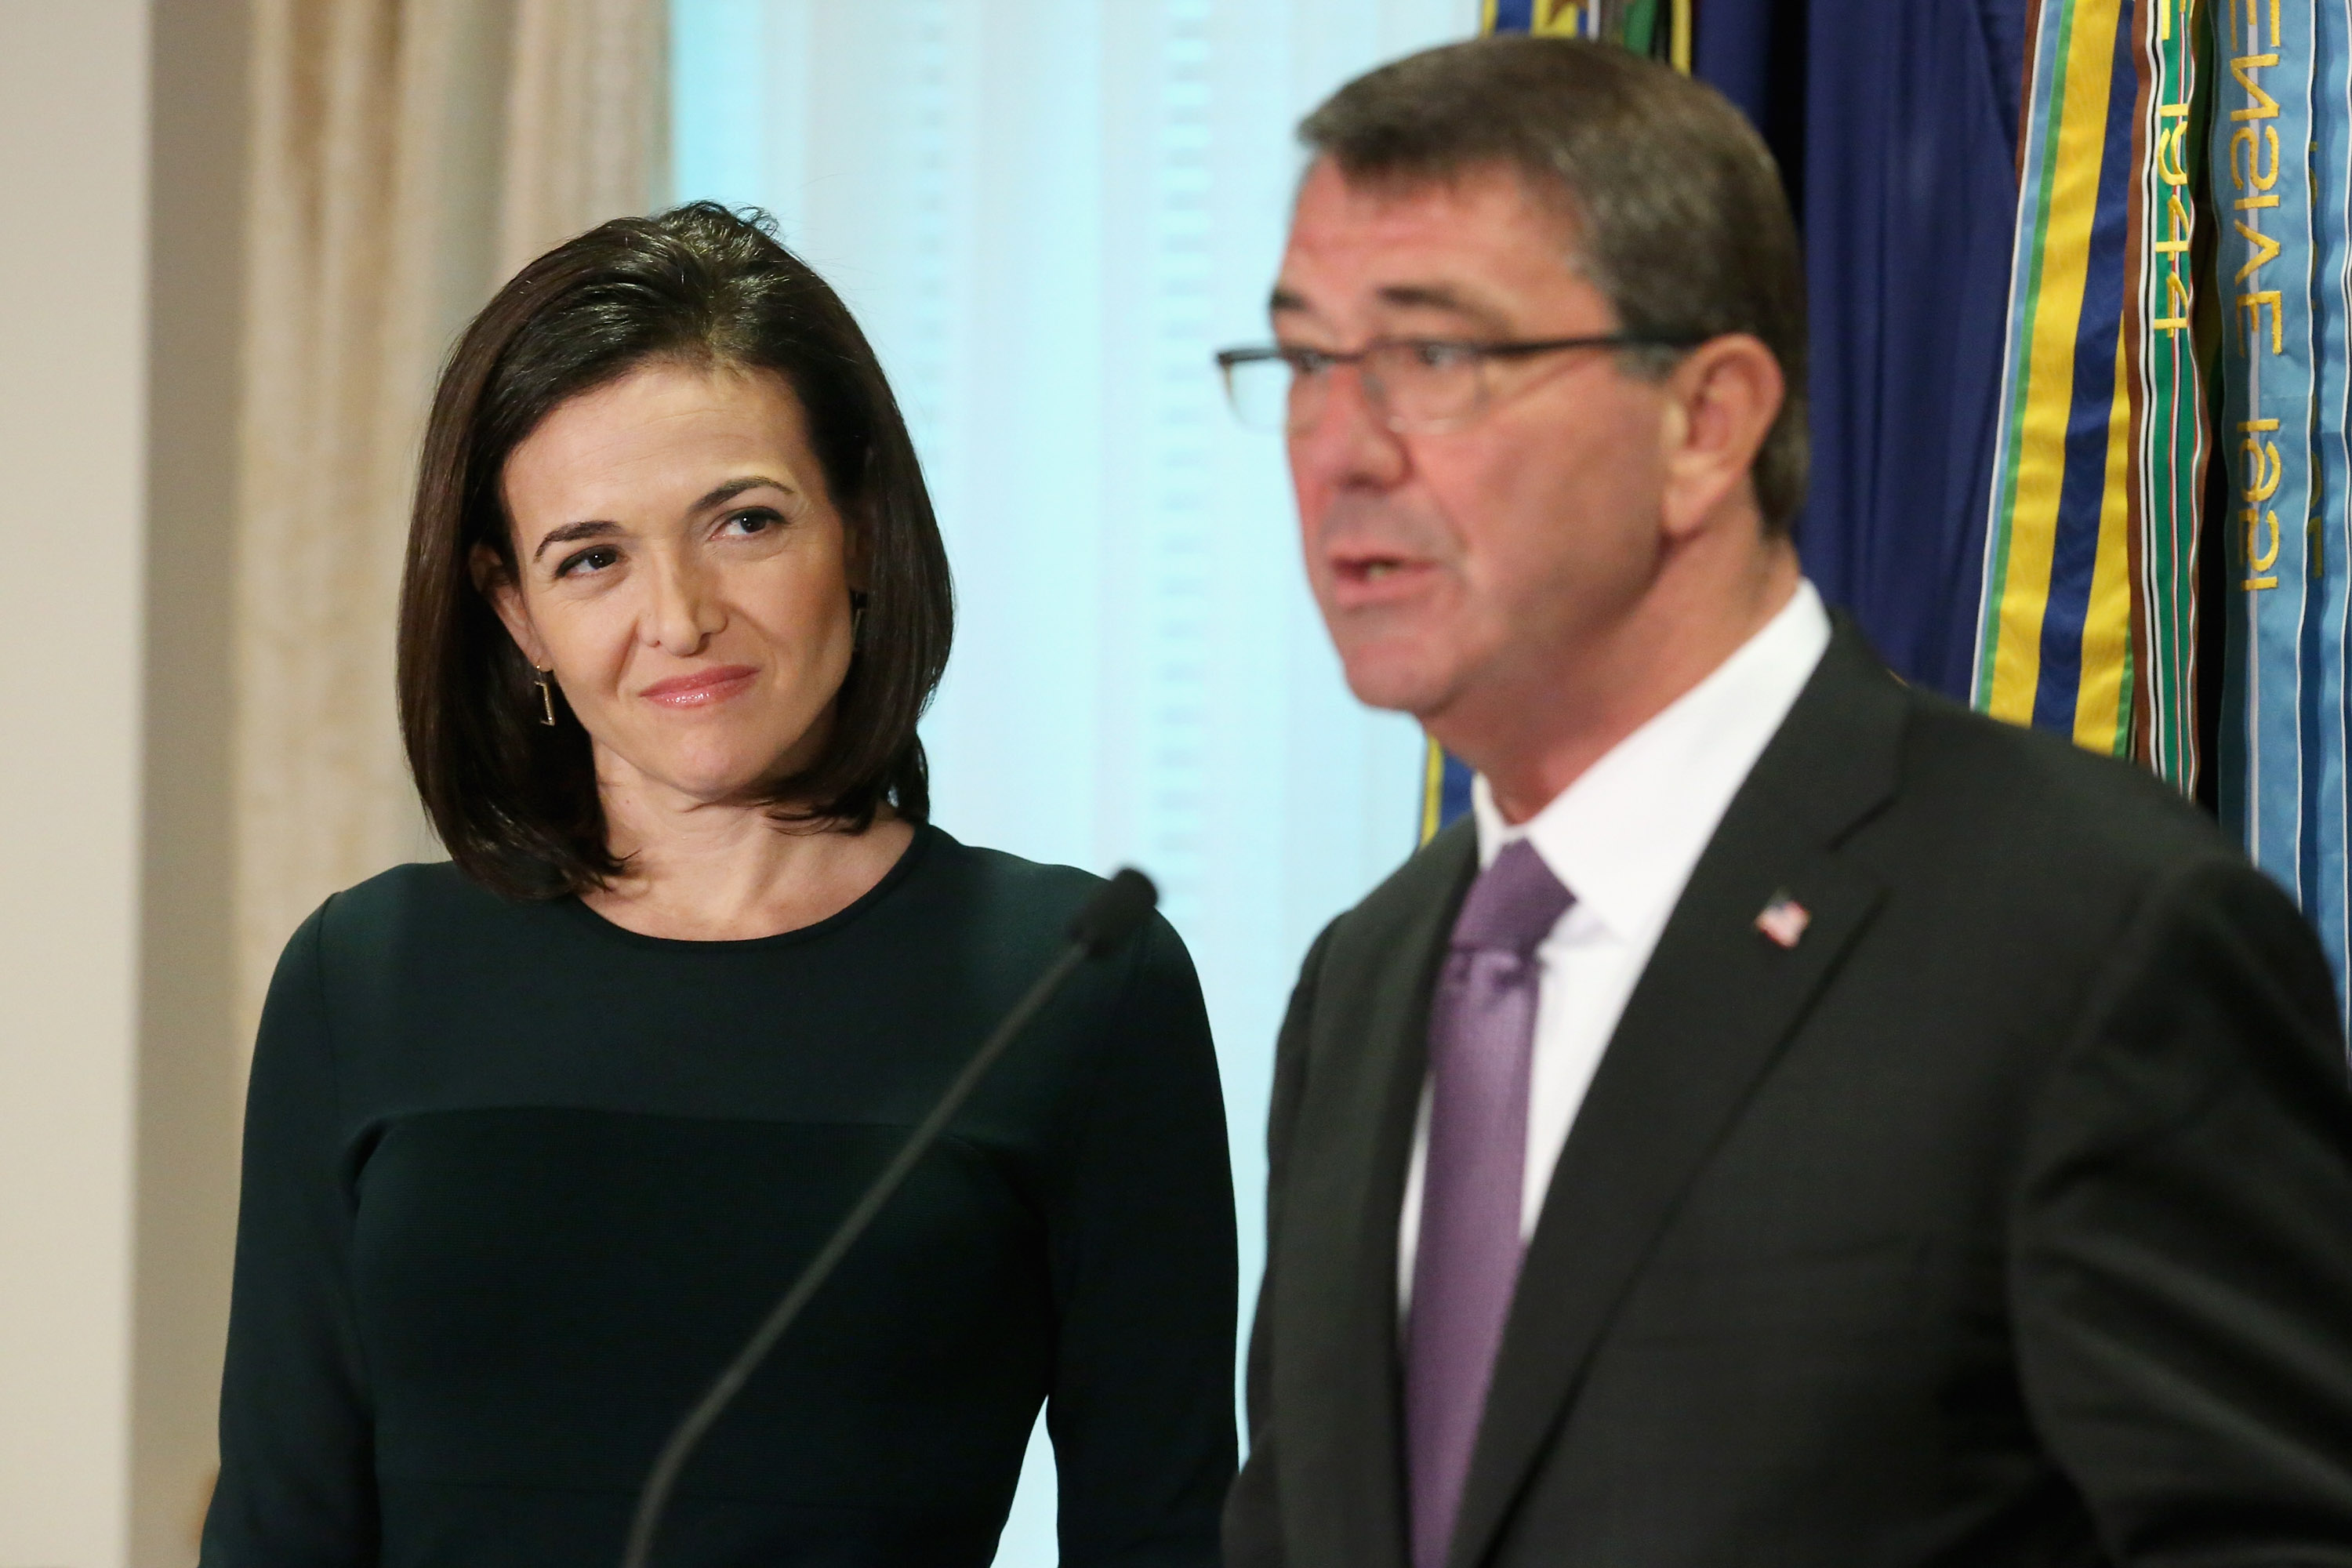 Facebook Chief Operating Officer and founder of LeanIn.Org Sheryl Sandberg (L) and U.S. Defense Secretary Ashton Carter deliver remarks after hosting a 'Lean In Circle' with female members of the military at the Pentagon September 21, 2015 in Arlington, Virginia. Carter announced that the Department of Defense will now allow and encourage men and women in the armed forces to form and participate in 'Lean In Circles,' small groups of people who meet regularly and offer peer support while talking openly about gender issuses.